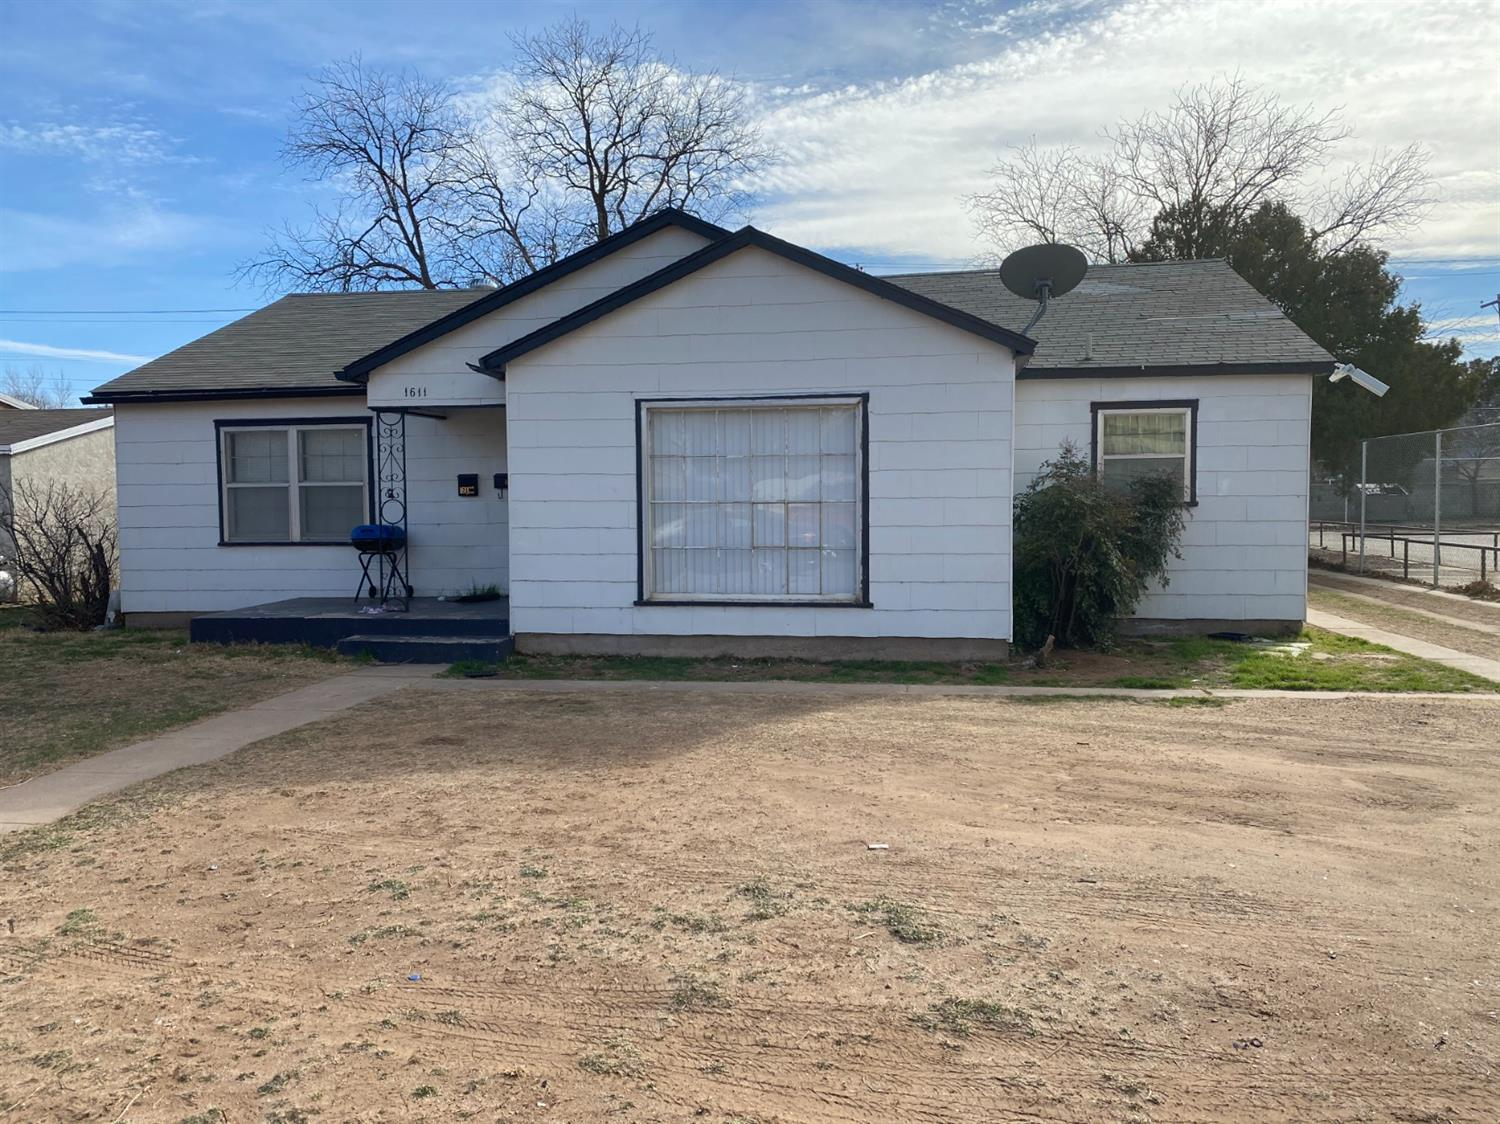 Rental with lots of space. Two living areas or second living area could be used as an office. Nice sized galley kitchen with double ovens, pantry & gas drop in range. Central HVAC. The garage apartment is rented for extra income. This is an ideal property for investors that has good clean appeal.